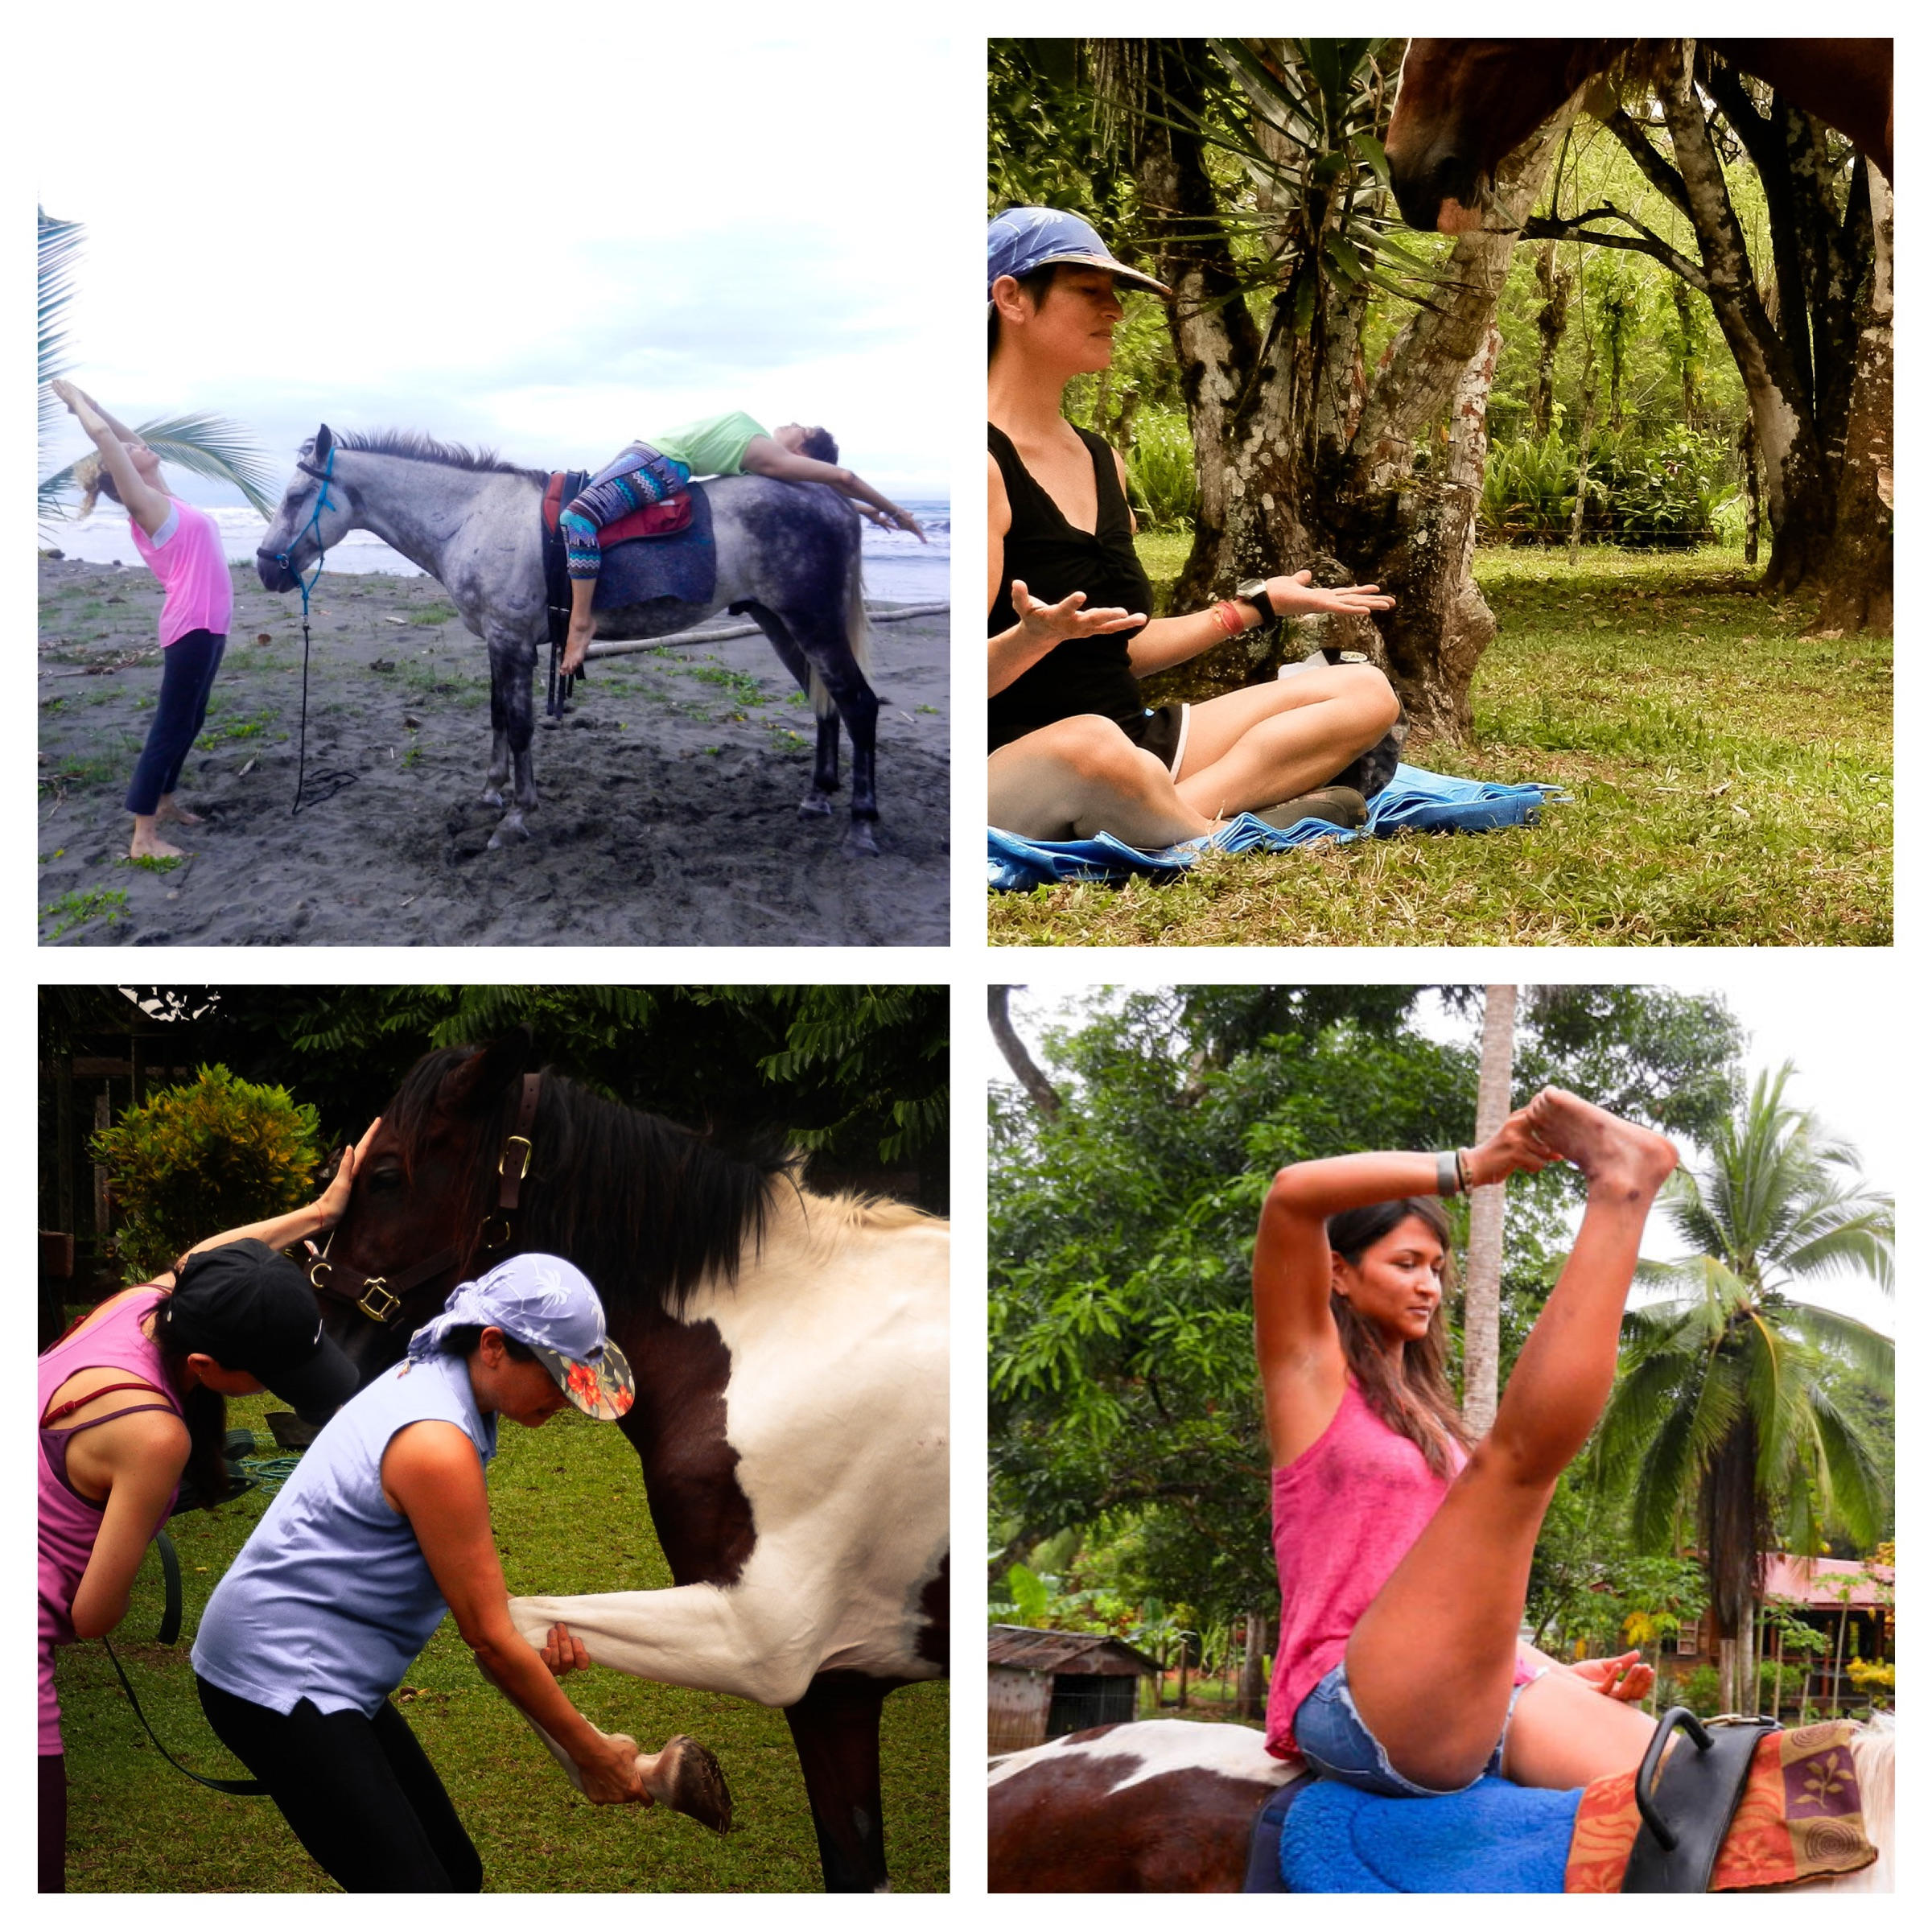 Yoga in Harmony with Horses